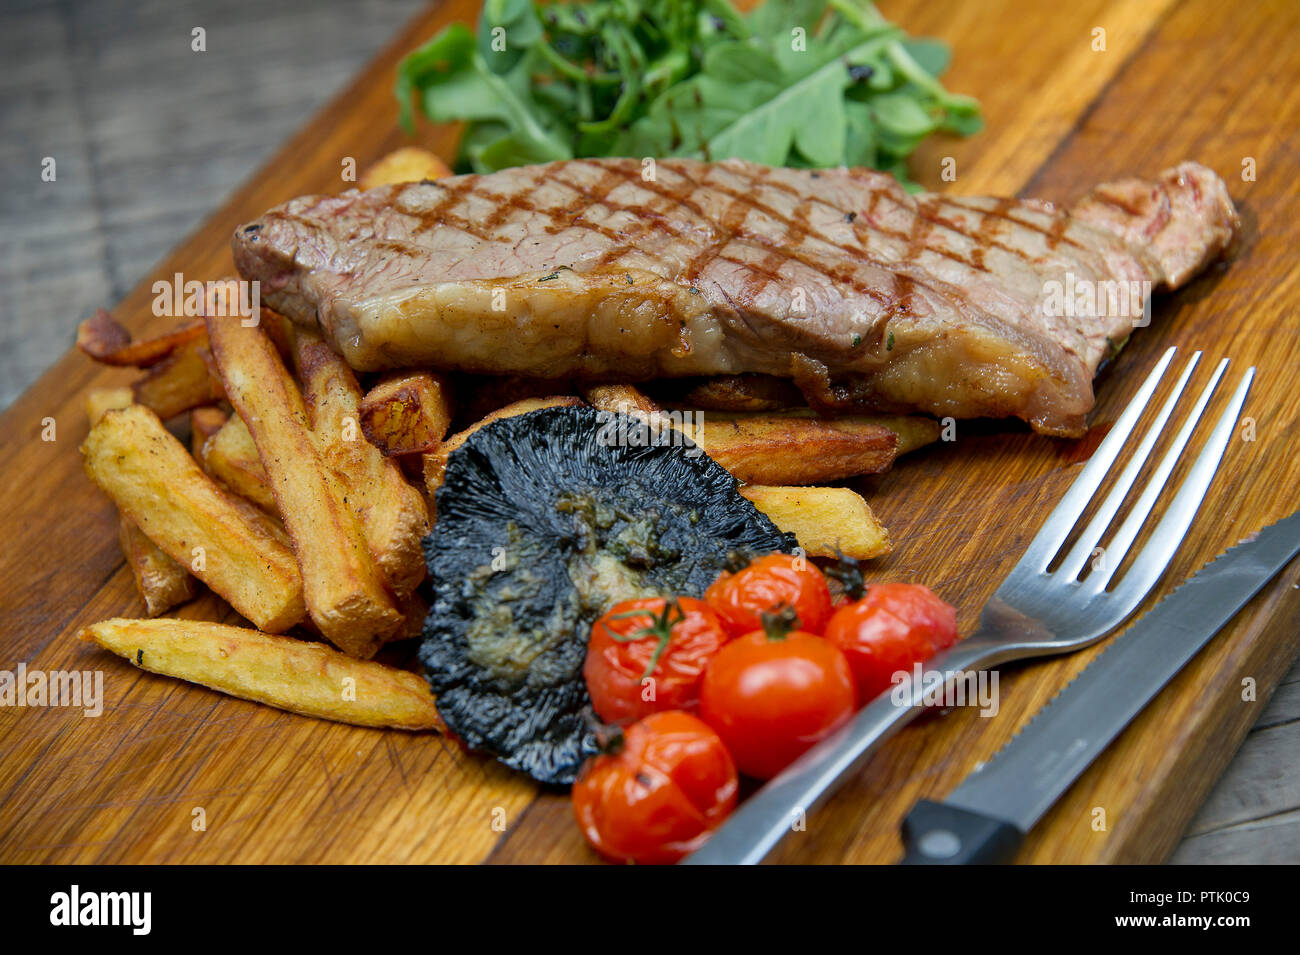 The Volunteer Tavern, sirloin steak and chips - Stock Image